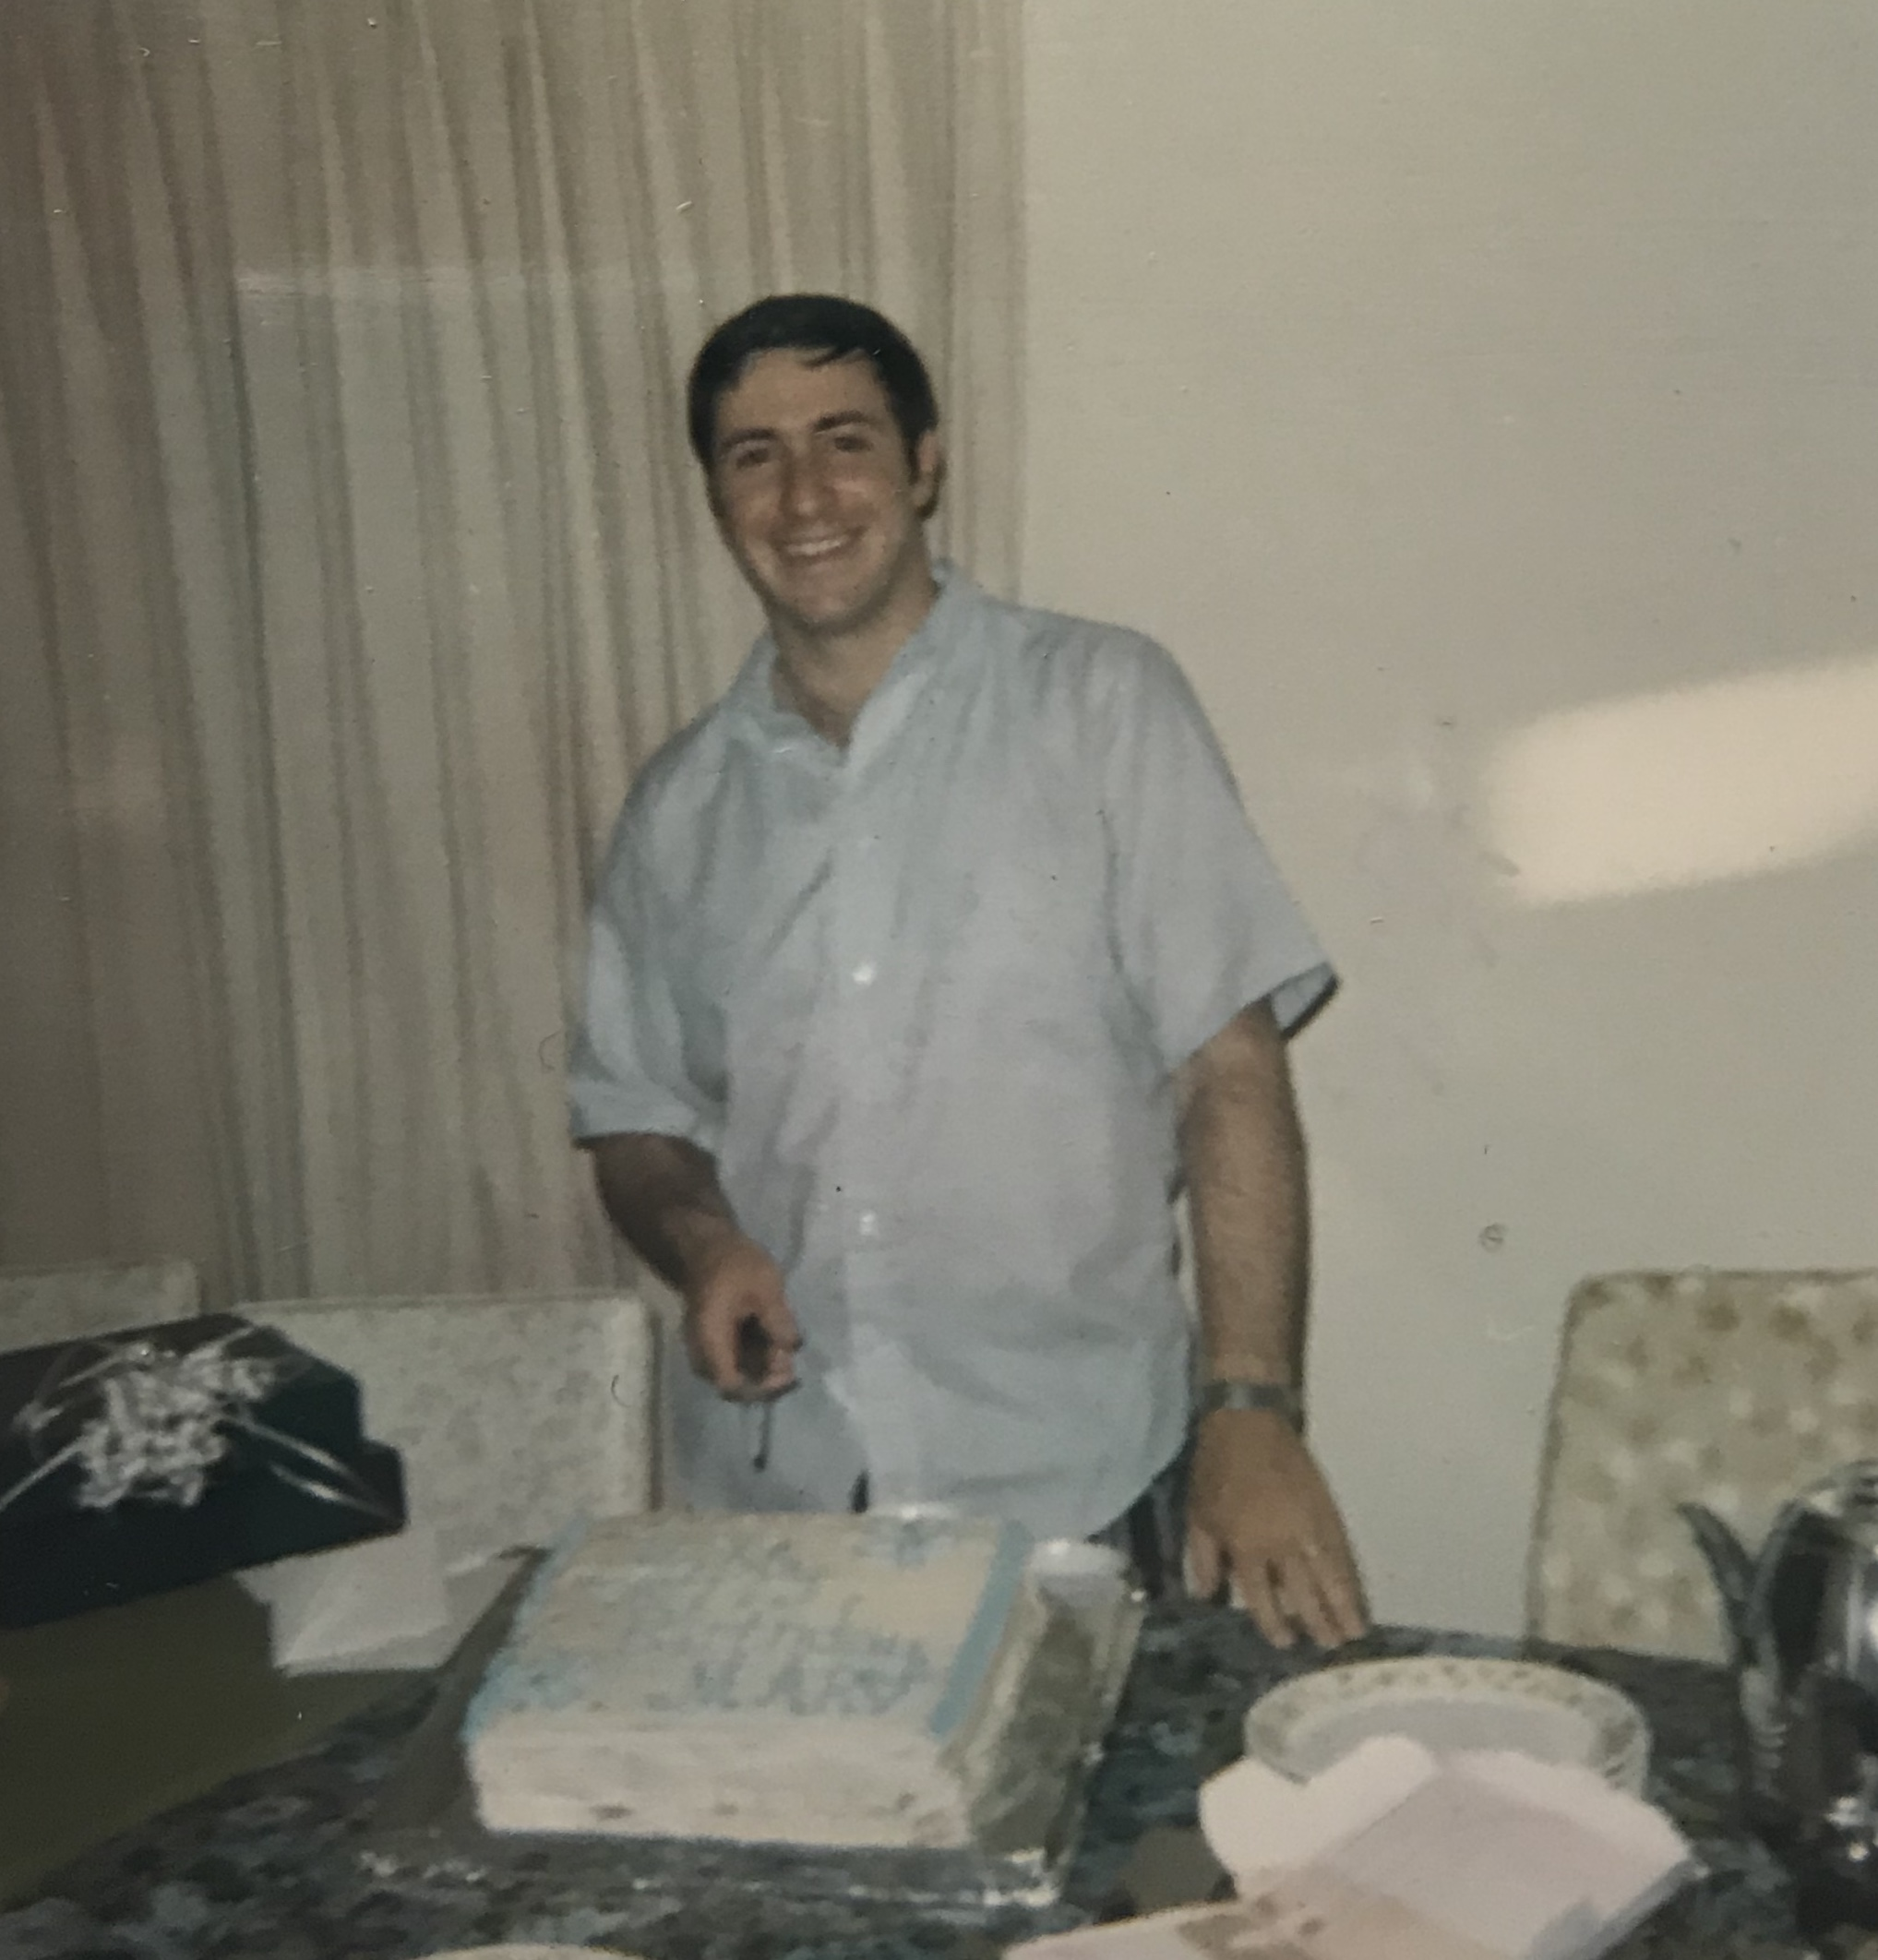 I think this was taken when he must have been turning around 24 or 25. My parents married very young, my mom was only 21 and my dad was 23. My brother was born a year later.